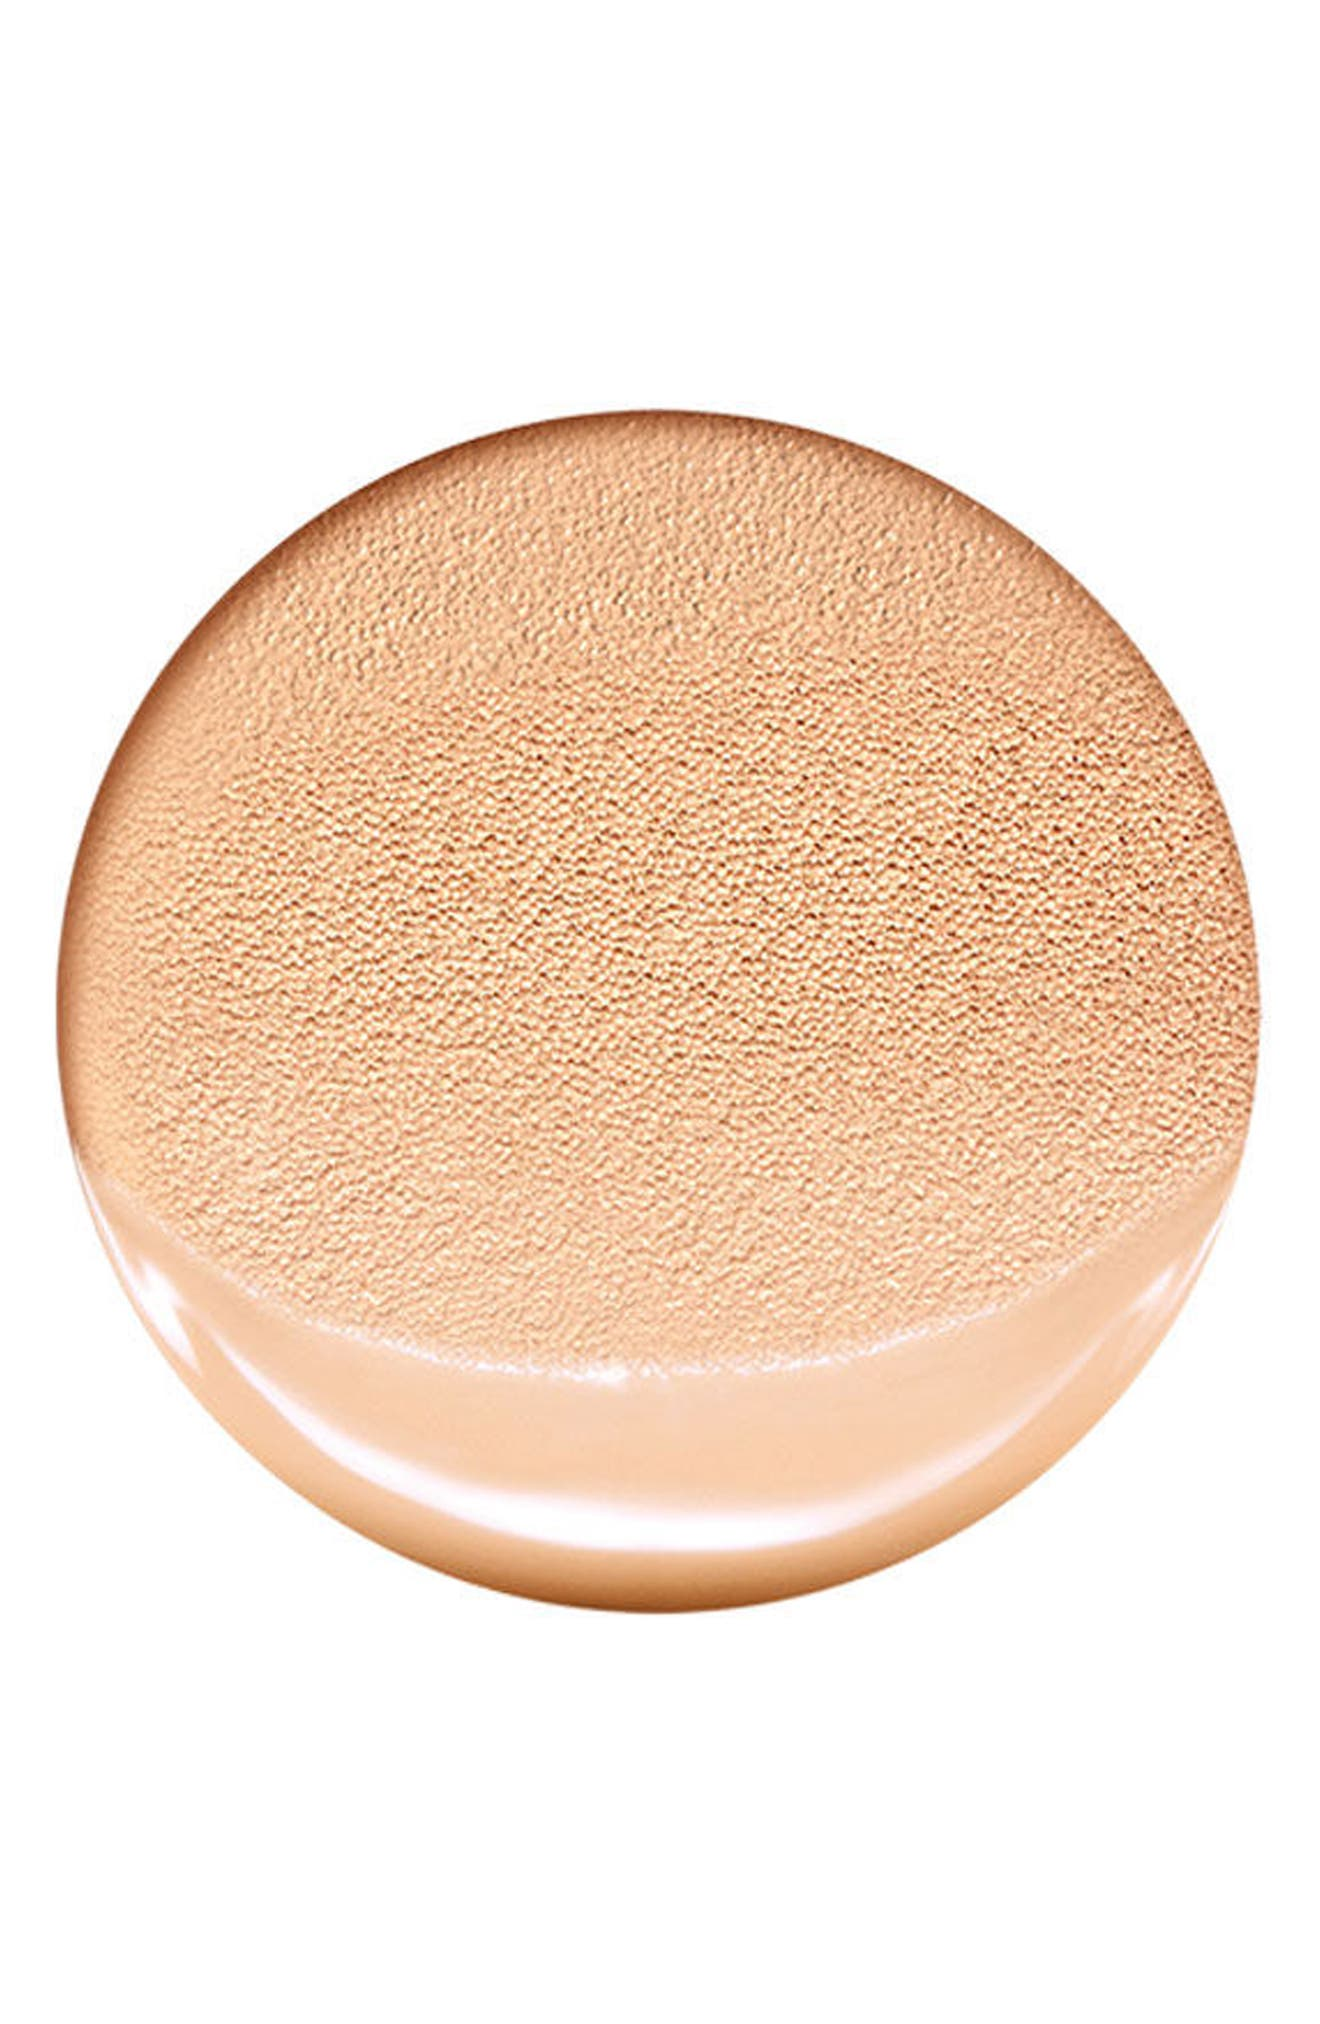 AMOREPACIFIC,                             'Color Control' Cushion Compact Broad Spectrum SPF 50,                             Alternate thumbnail 2, color,                             106 - MEDIUM PINK